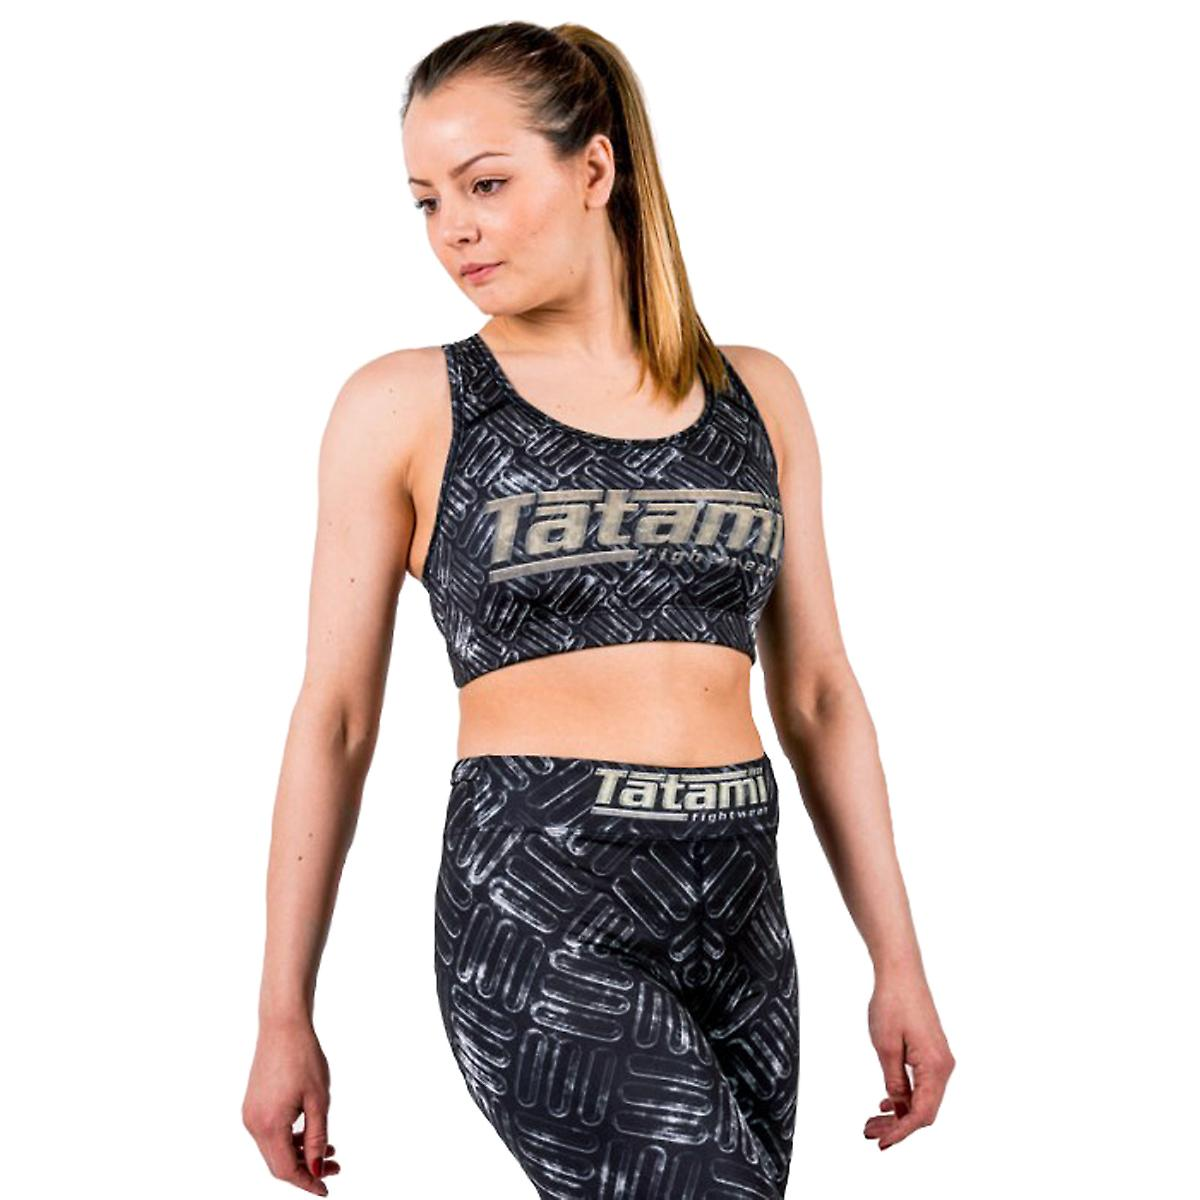 Tatami Fightwear Metal Sports Bra - Black/Gray